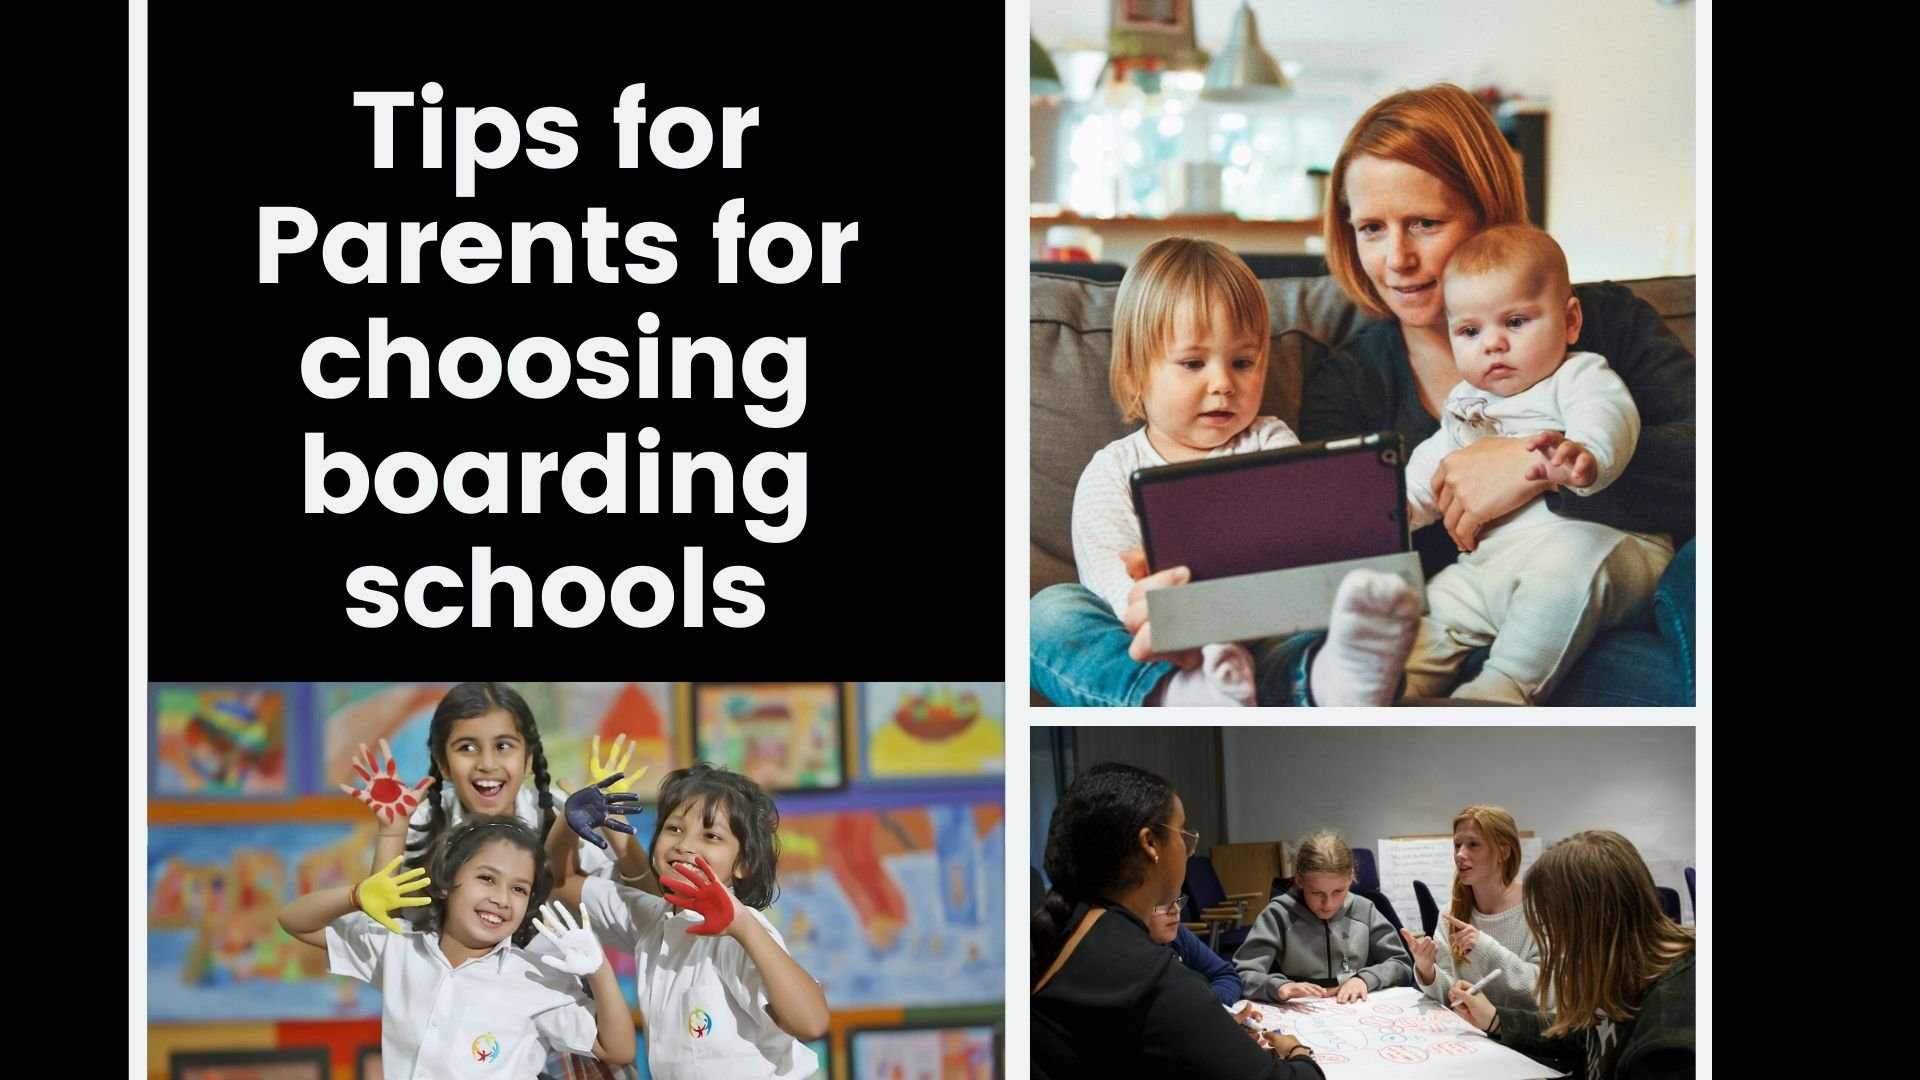 Tips for Parents for choosing boarding schools